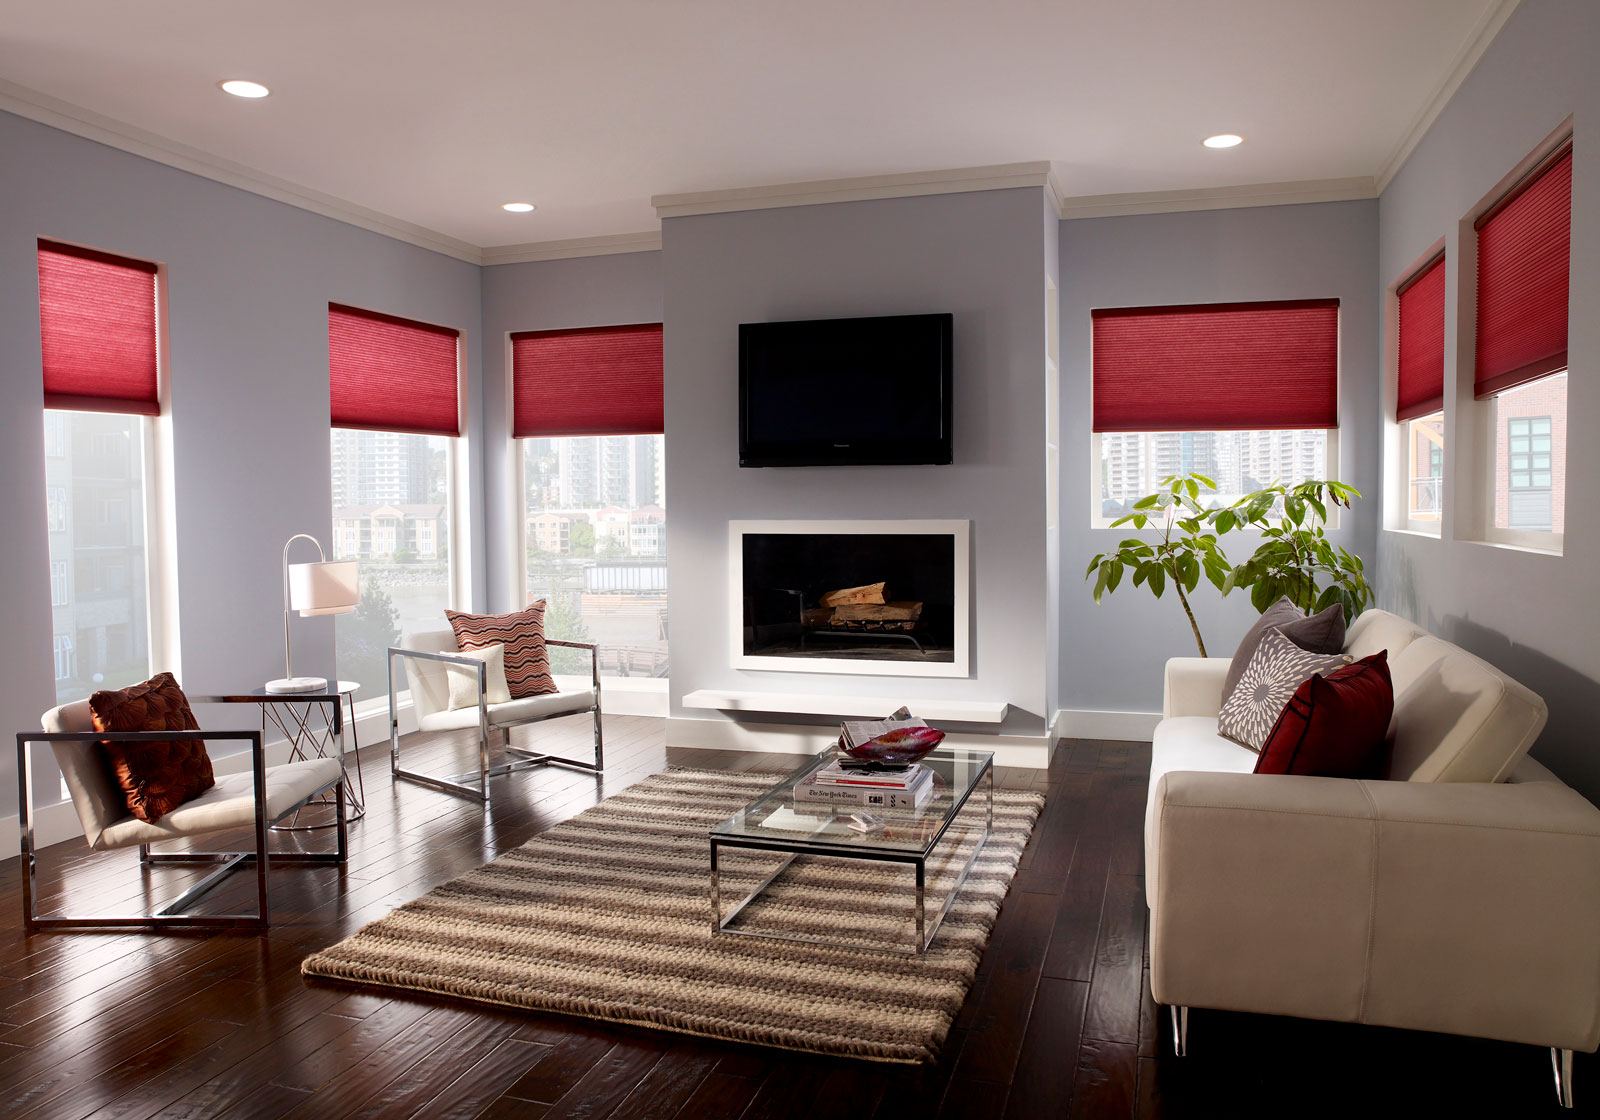 Lutron personalized light control